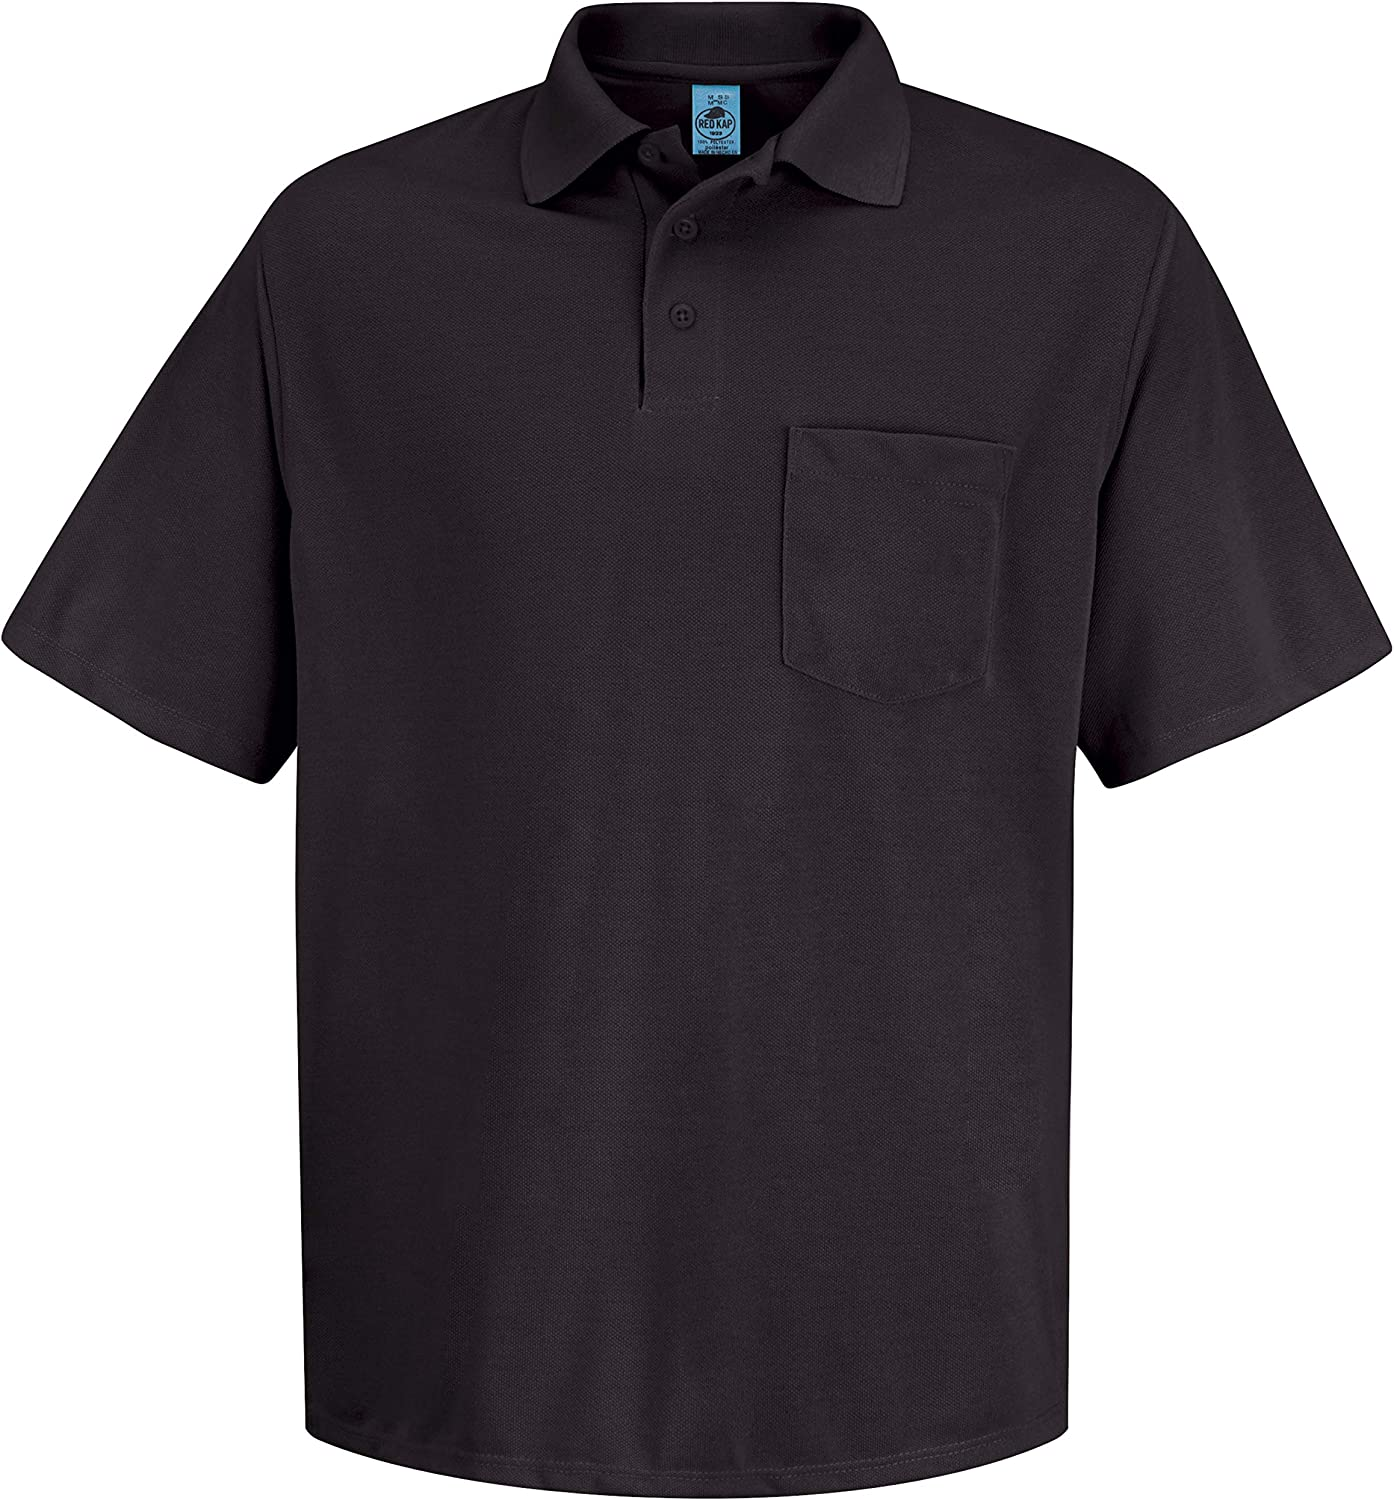 Red Kap Men's Performance Knit Polyester Solid Shirt